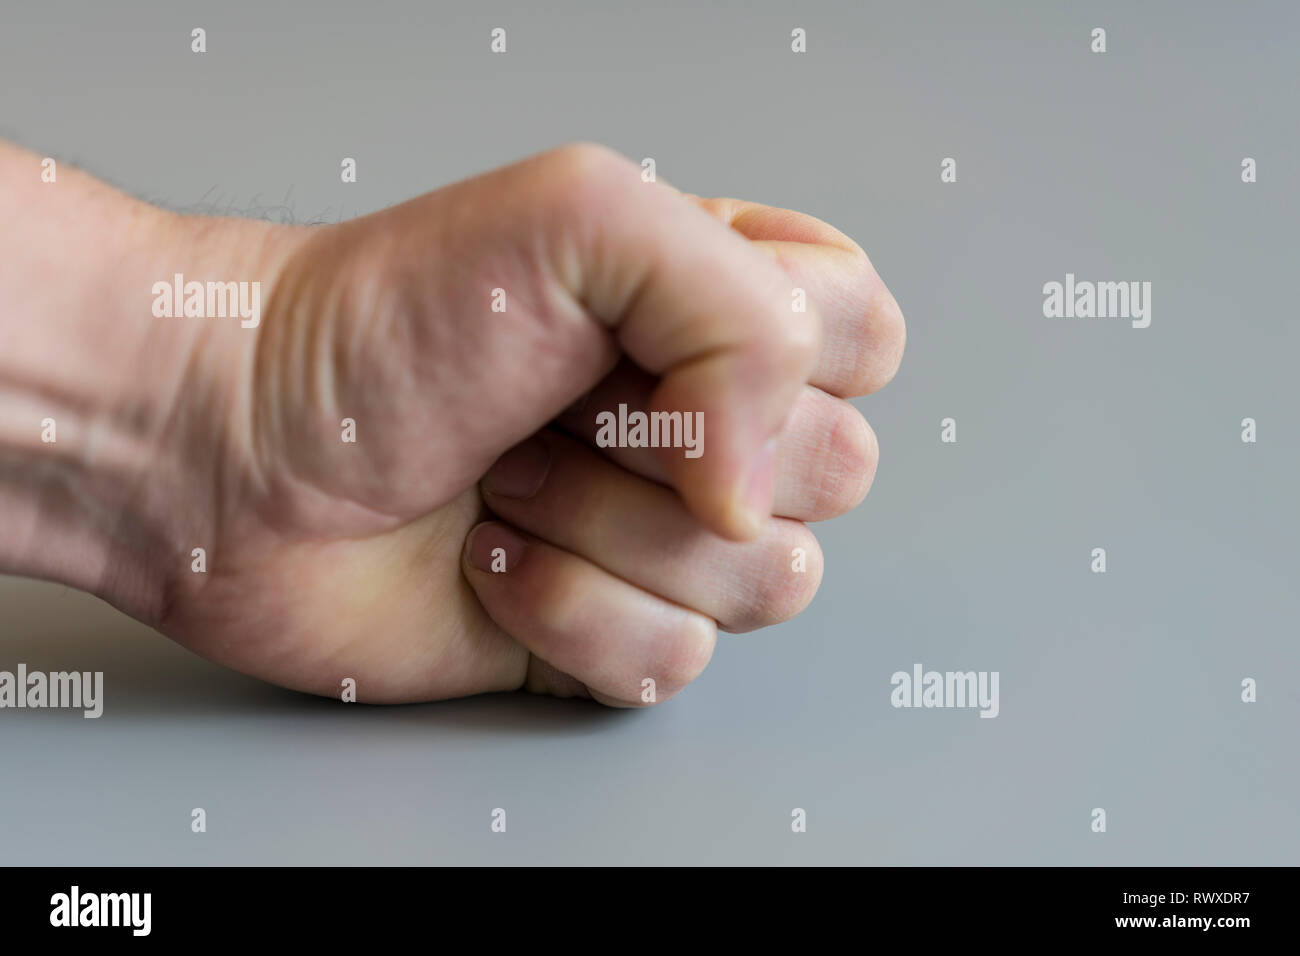 fist on gray background. The concept of domestic violence. Male rudeness and violence. - Stock Image